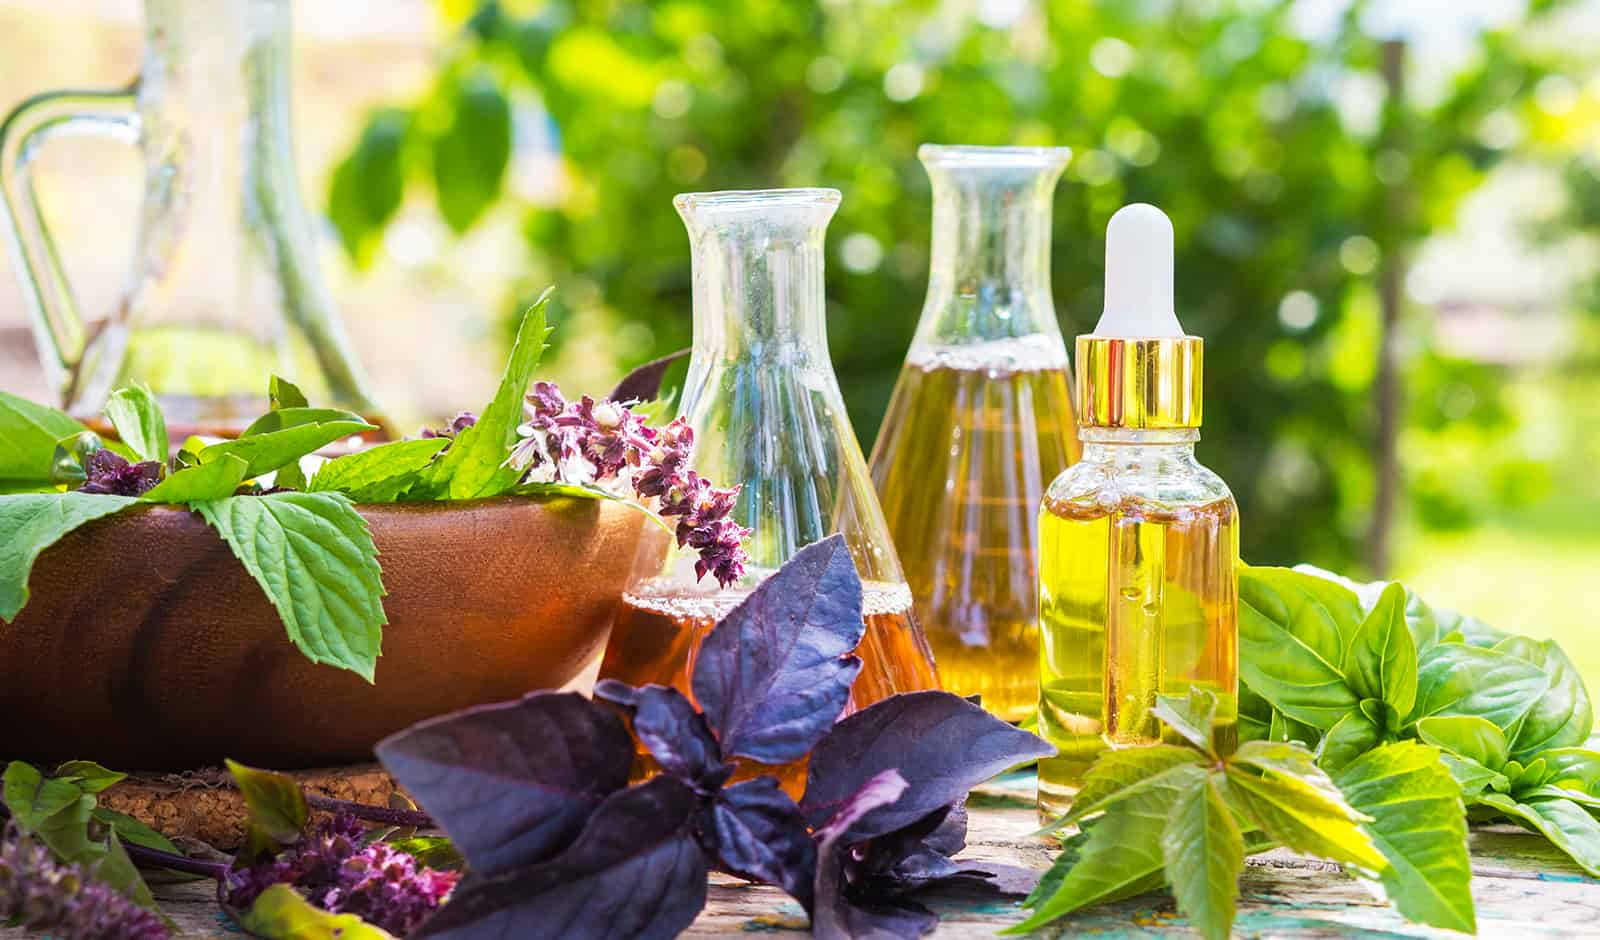 ways-to-incorporate-cbd-oils-in-your-routine-main-image